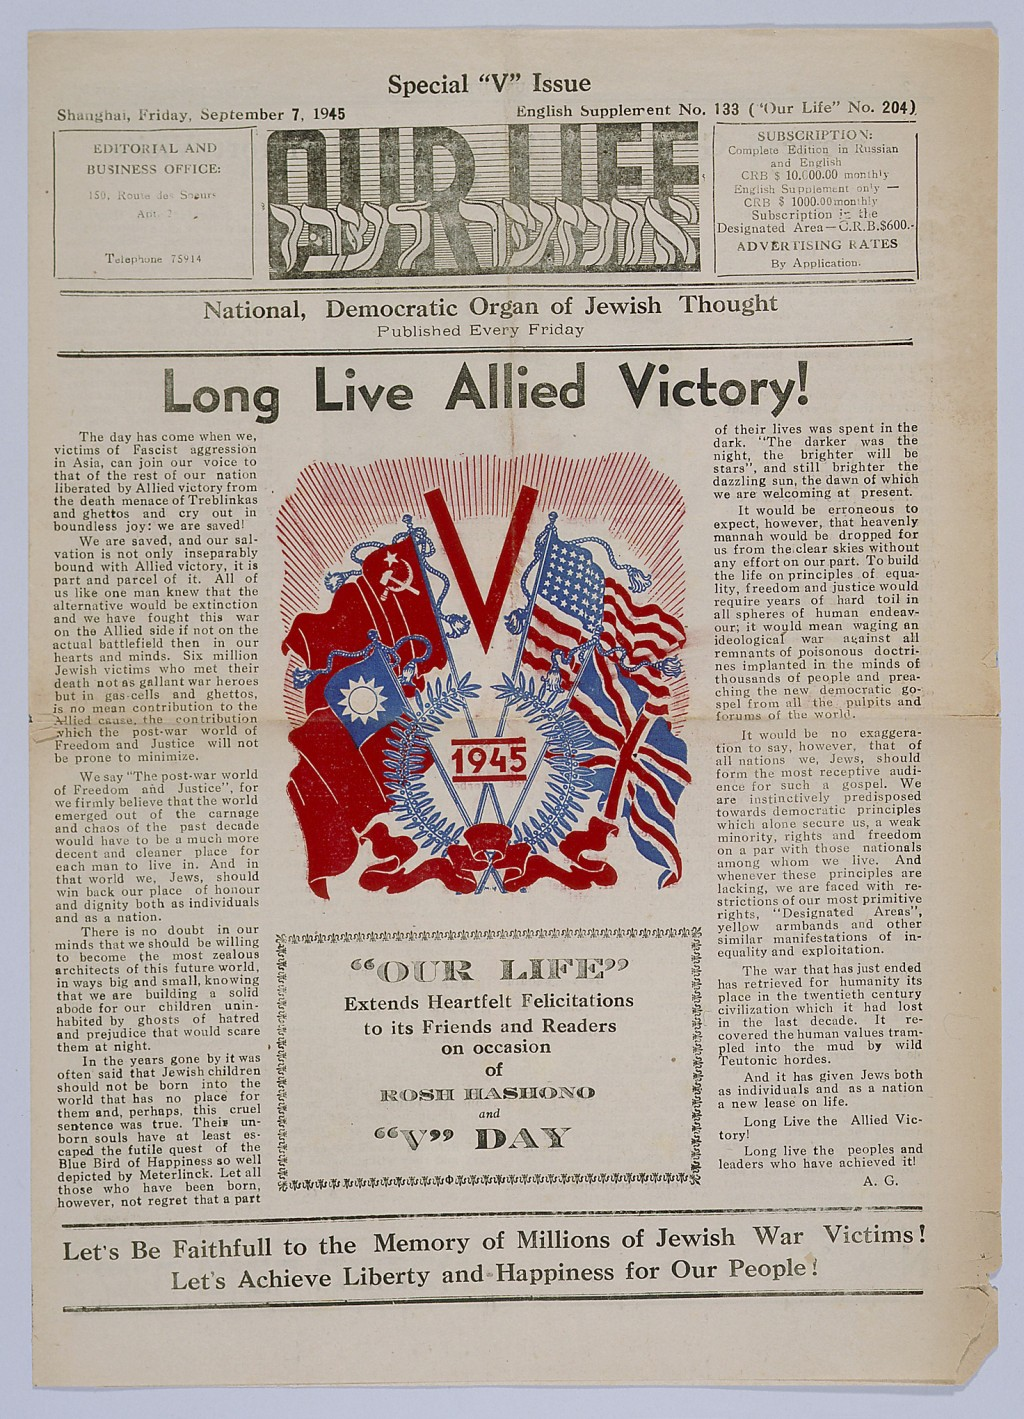 Our Life newspaper: Allied victory [LCID: 2002pkcn]